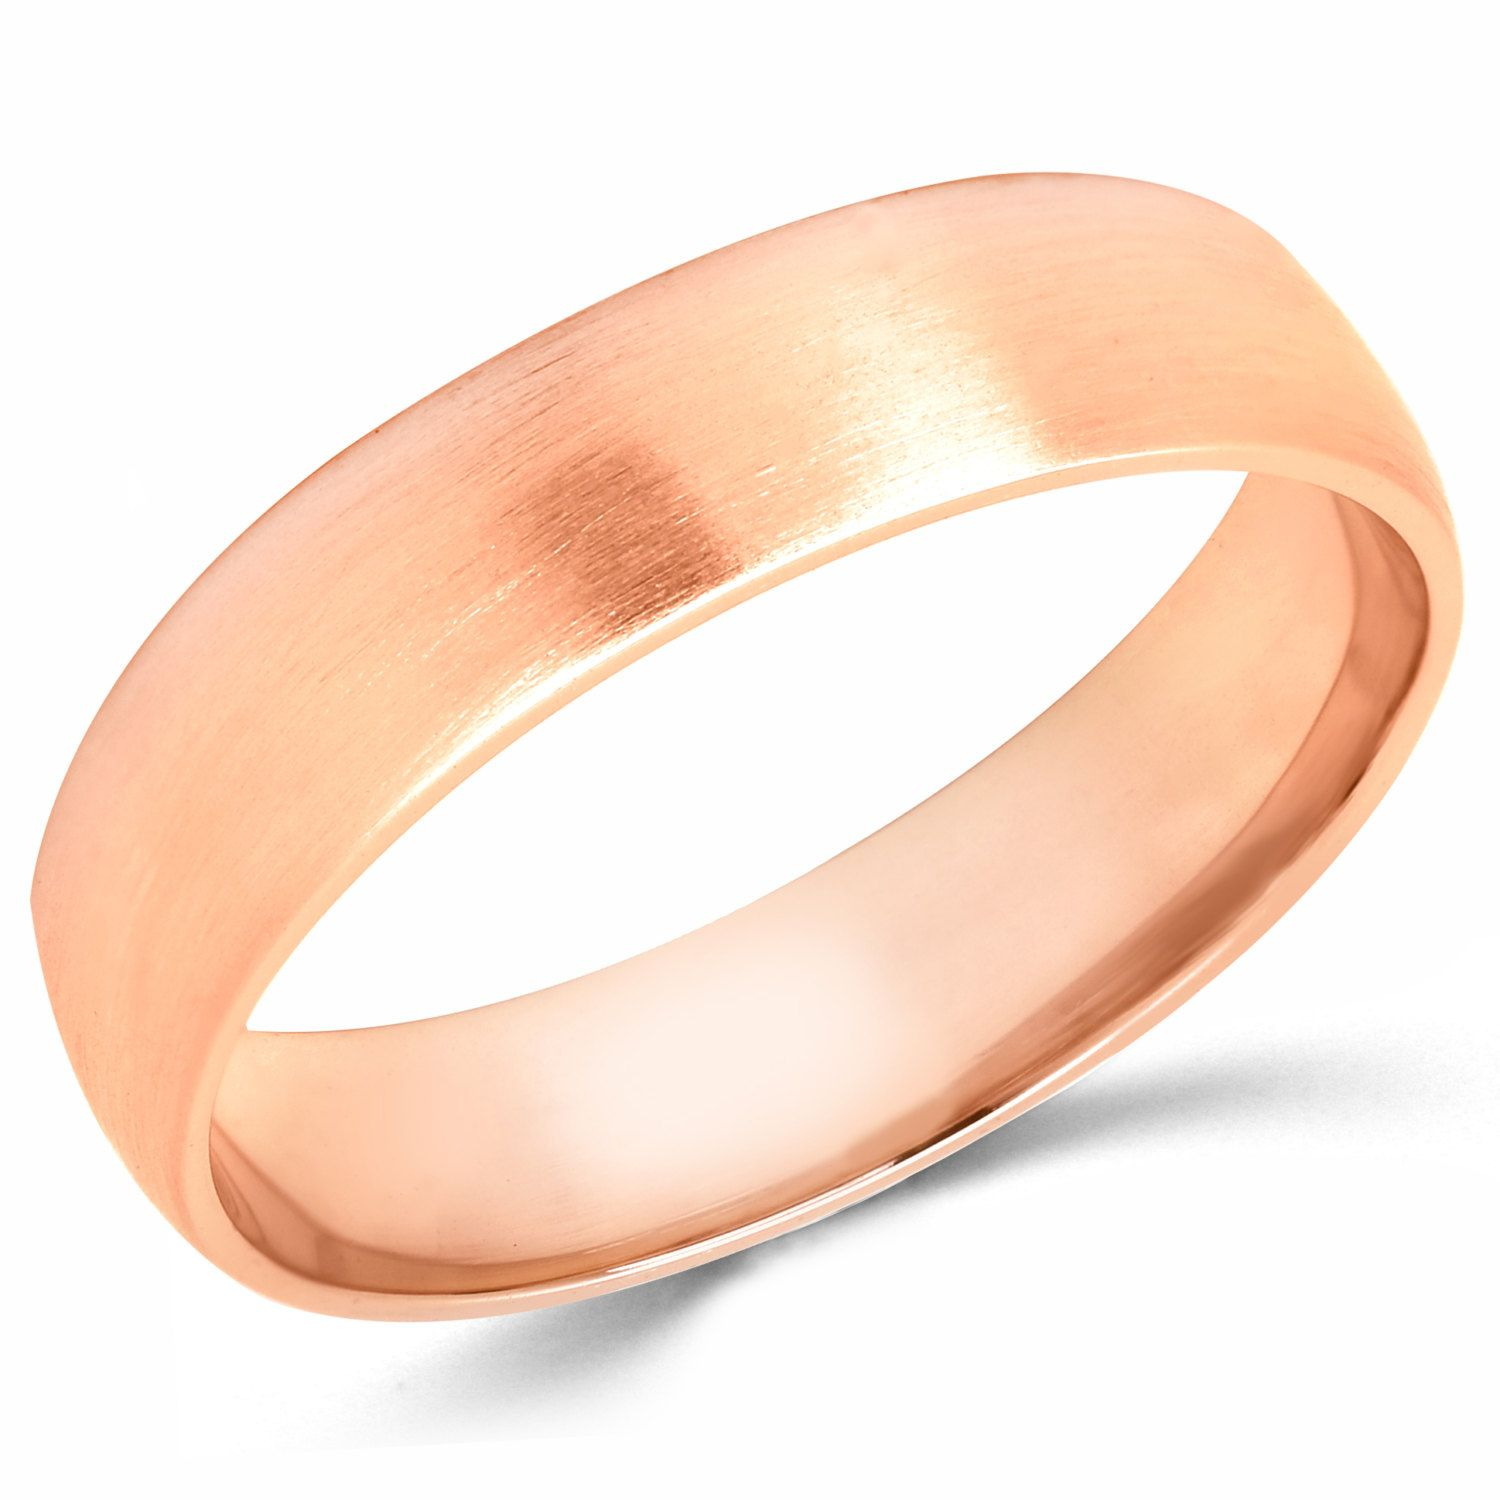 10K Solid Rose Pink Gold 5mm Brush Finish Wedding Band Ring